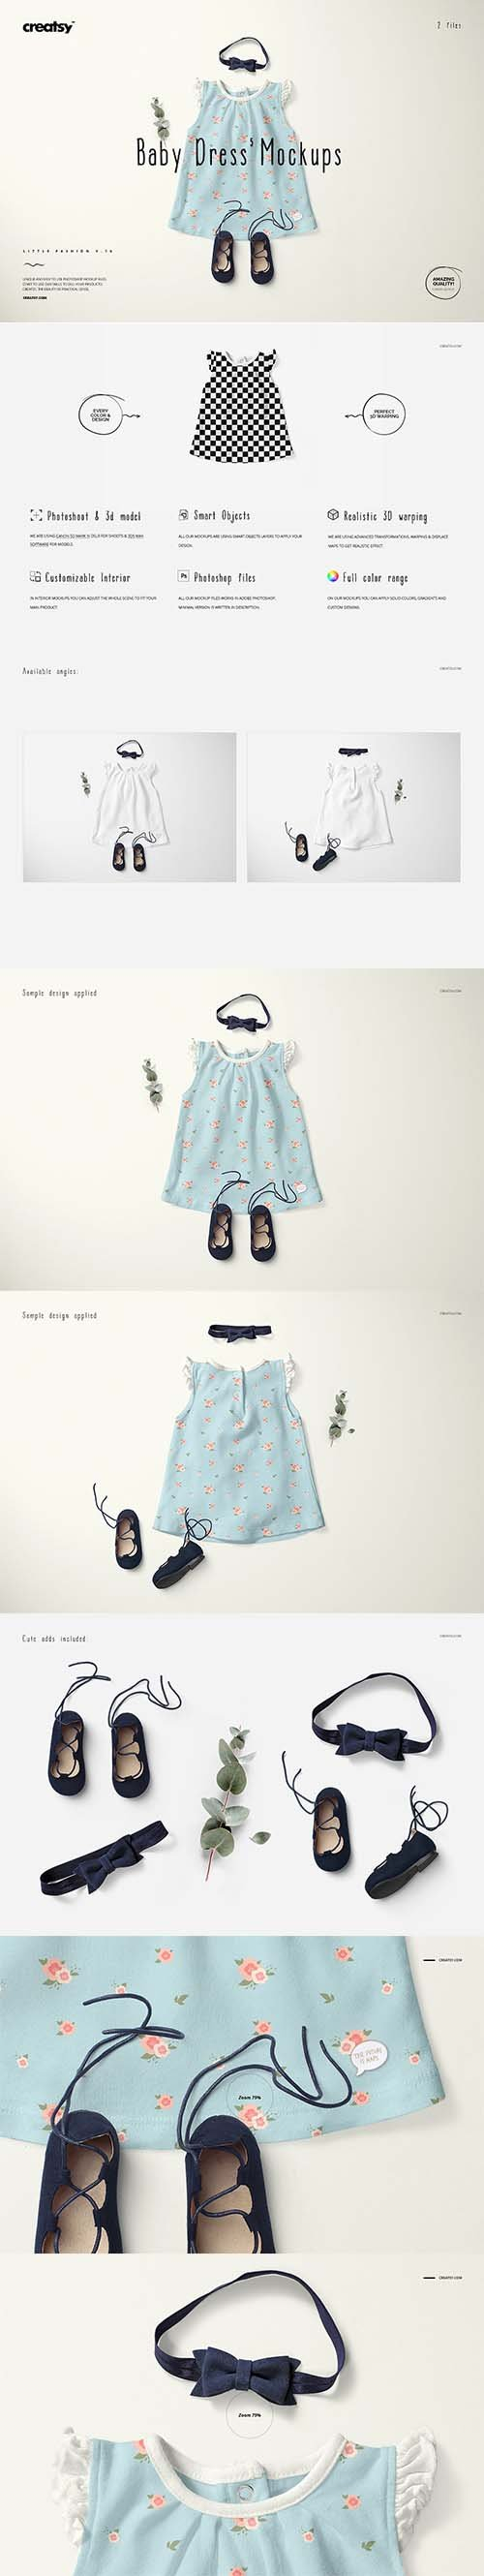 [Image: 1526295683_baby-dress-mockup-set-5-2534318.jpg]